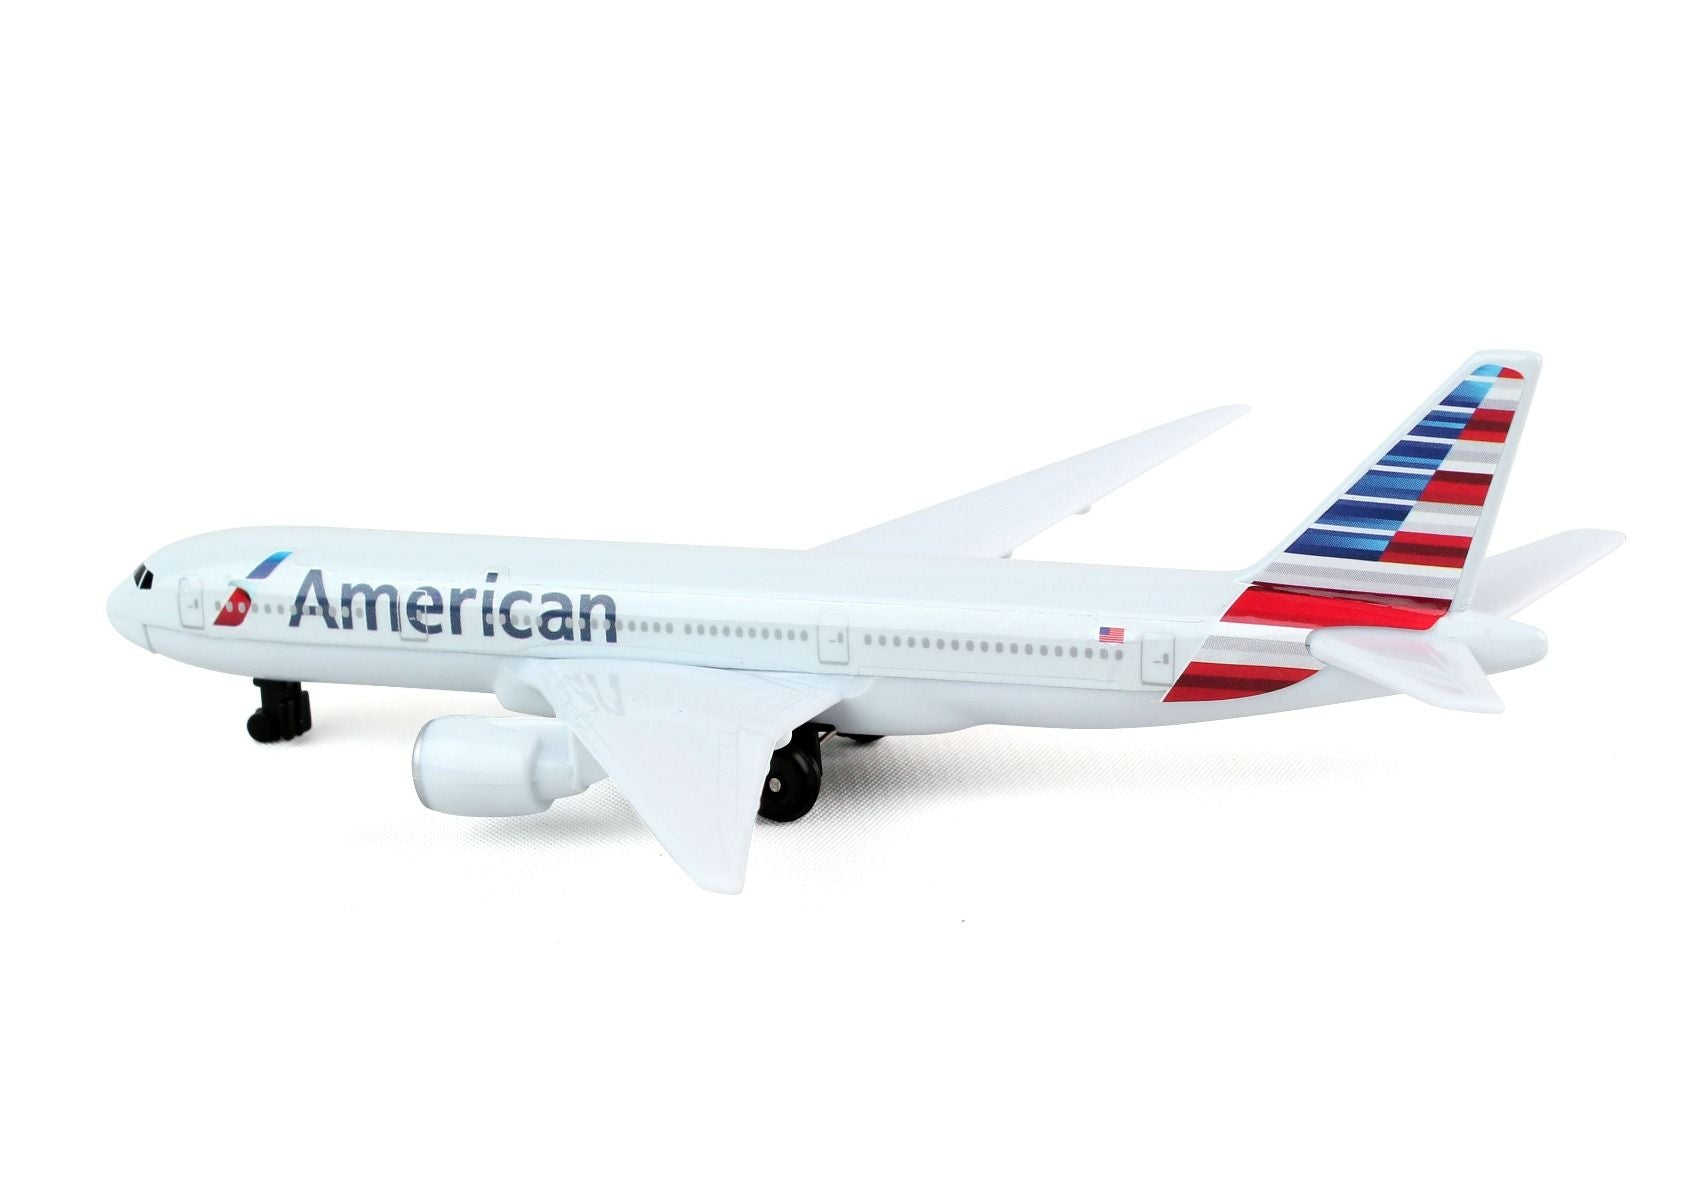 AMERICAN AIRLINES SINGLE PLANE NEW LIVERY - Sky Crew PTY